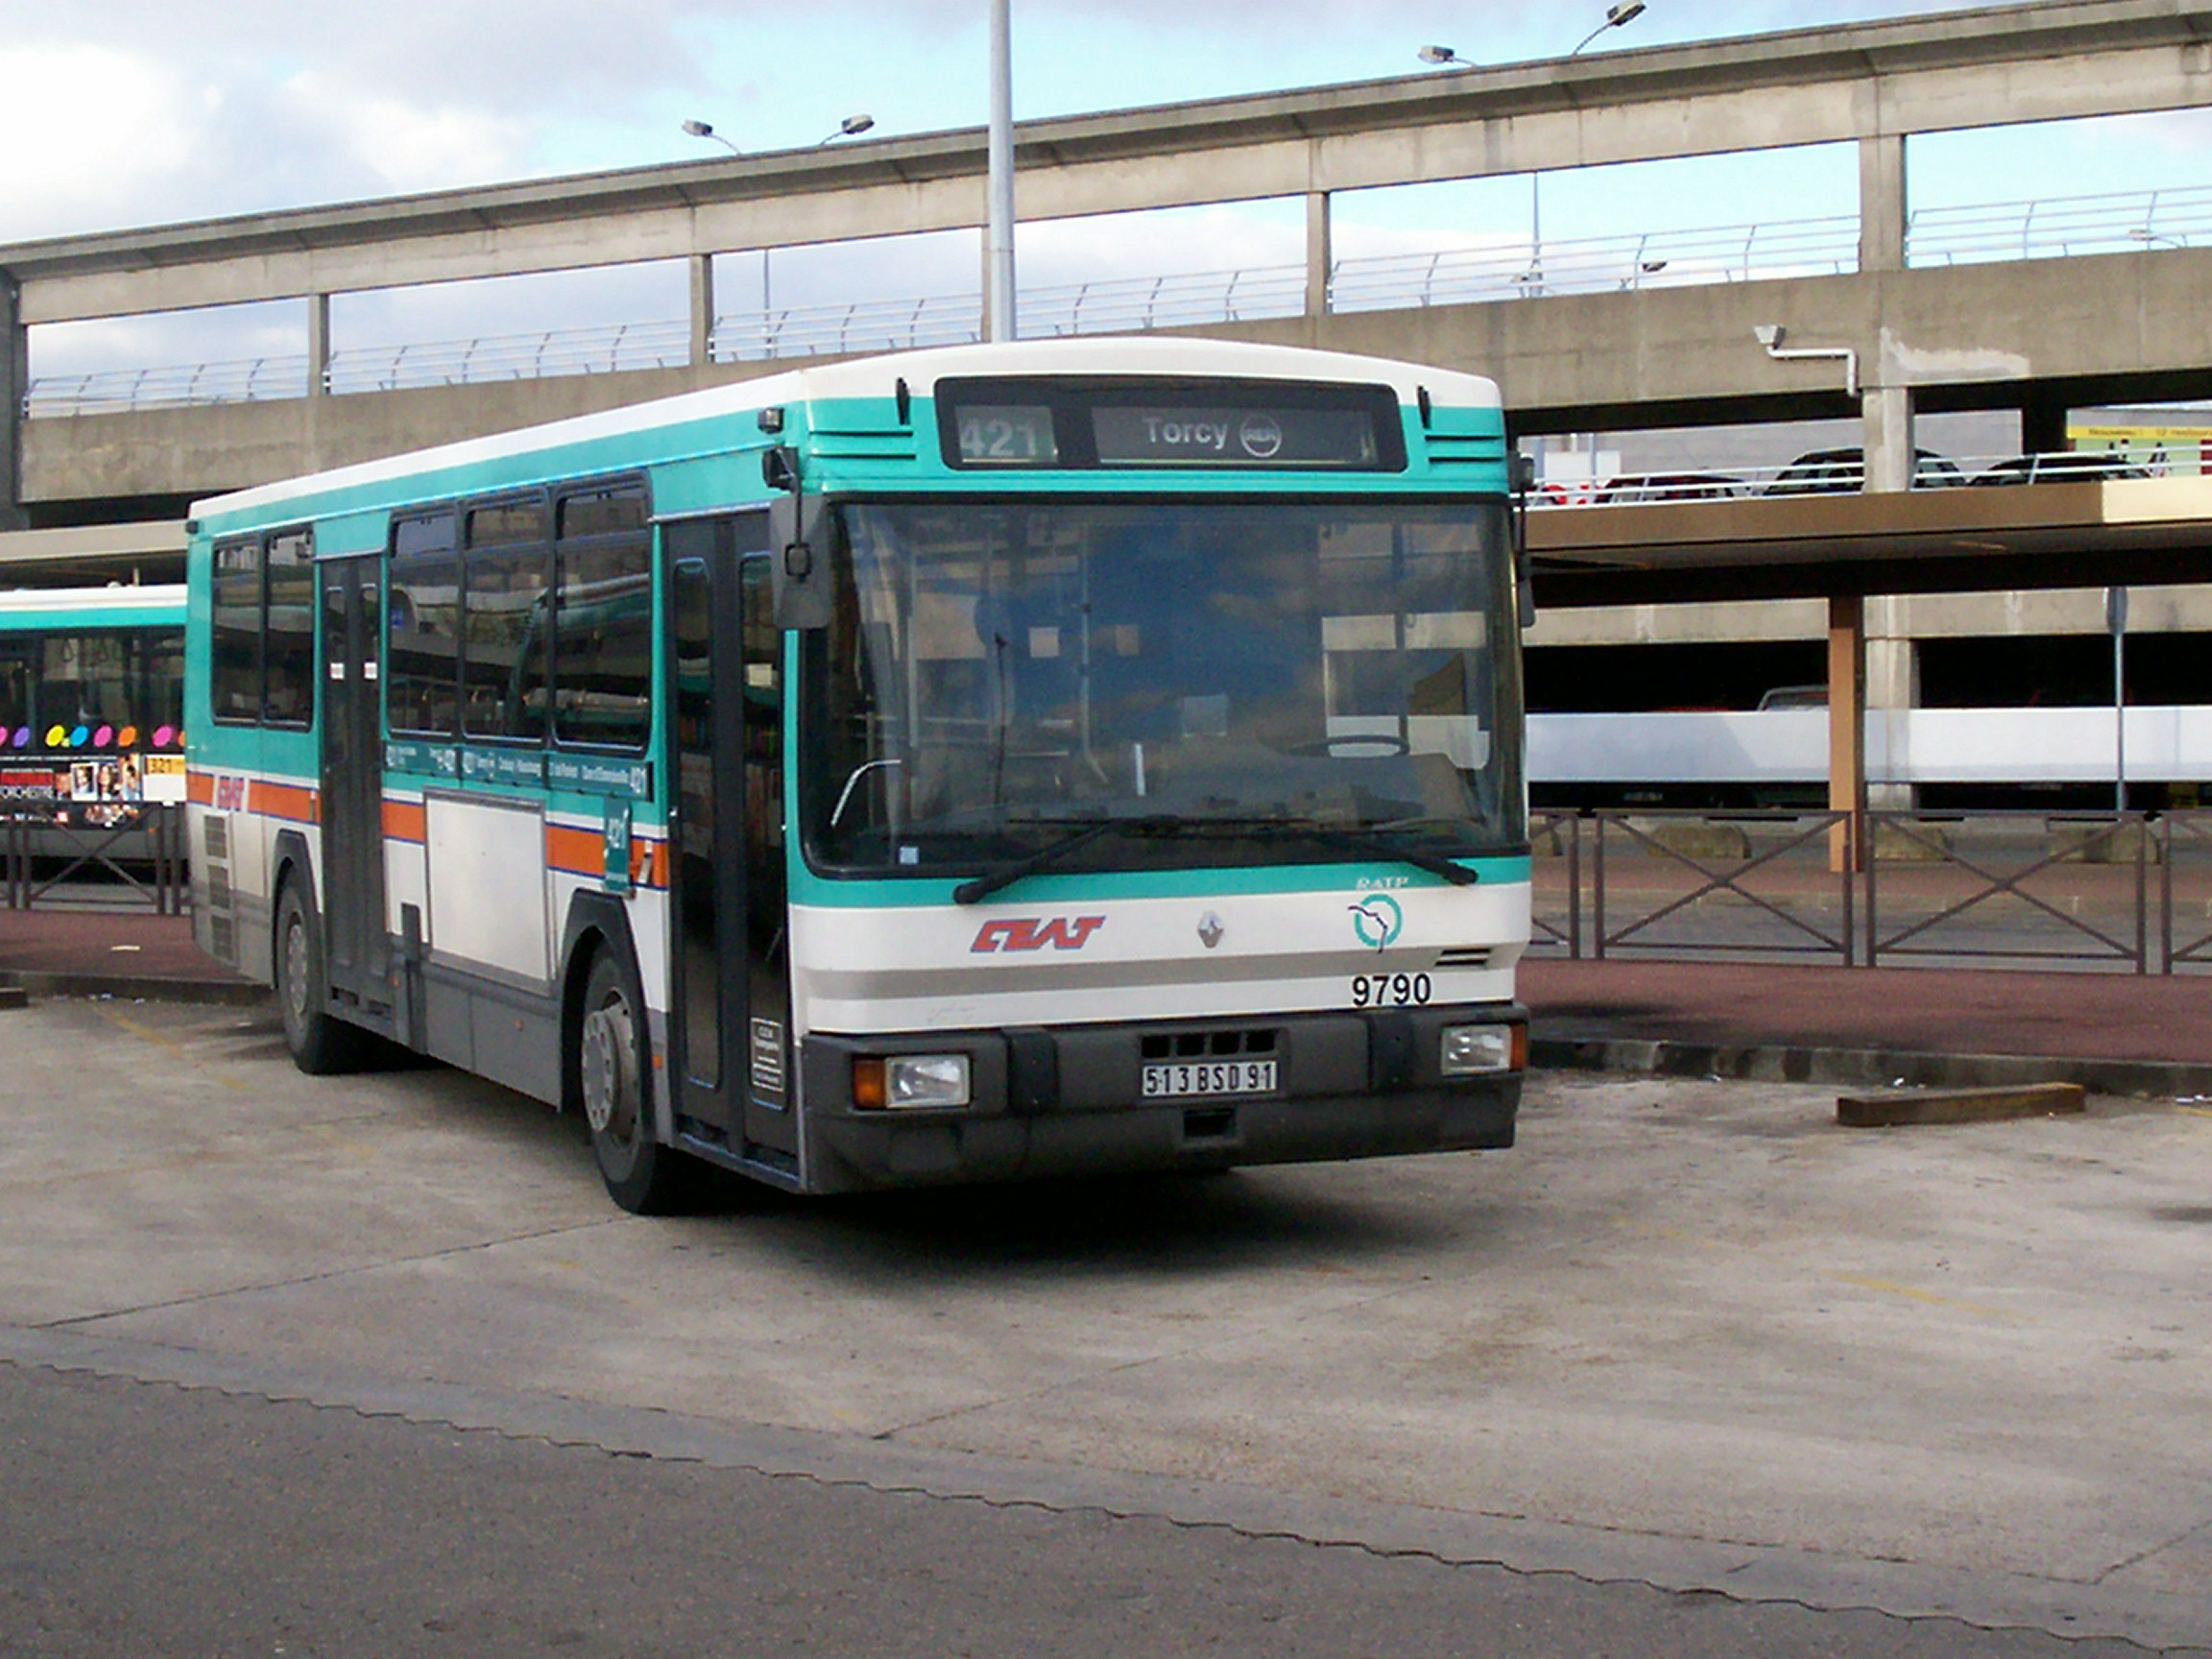 File bus421 garage wikimedia commons for Garage de la marne